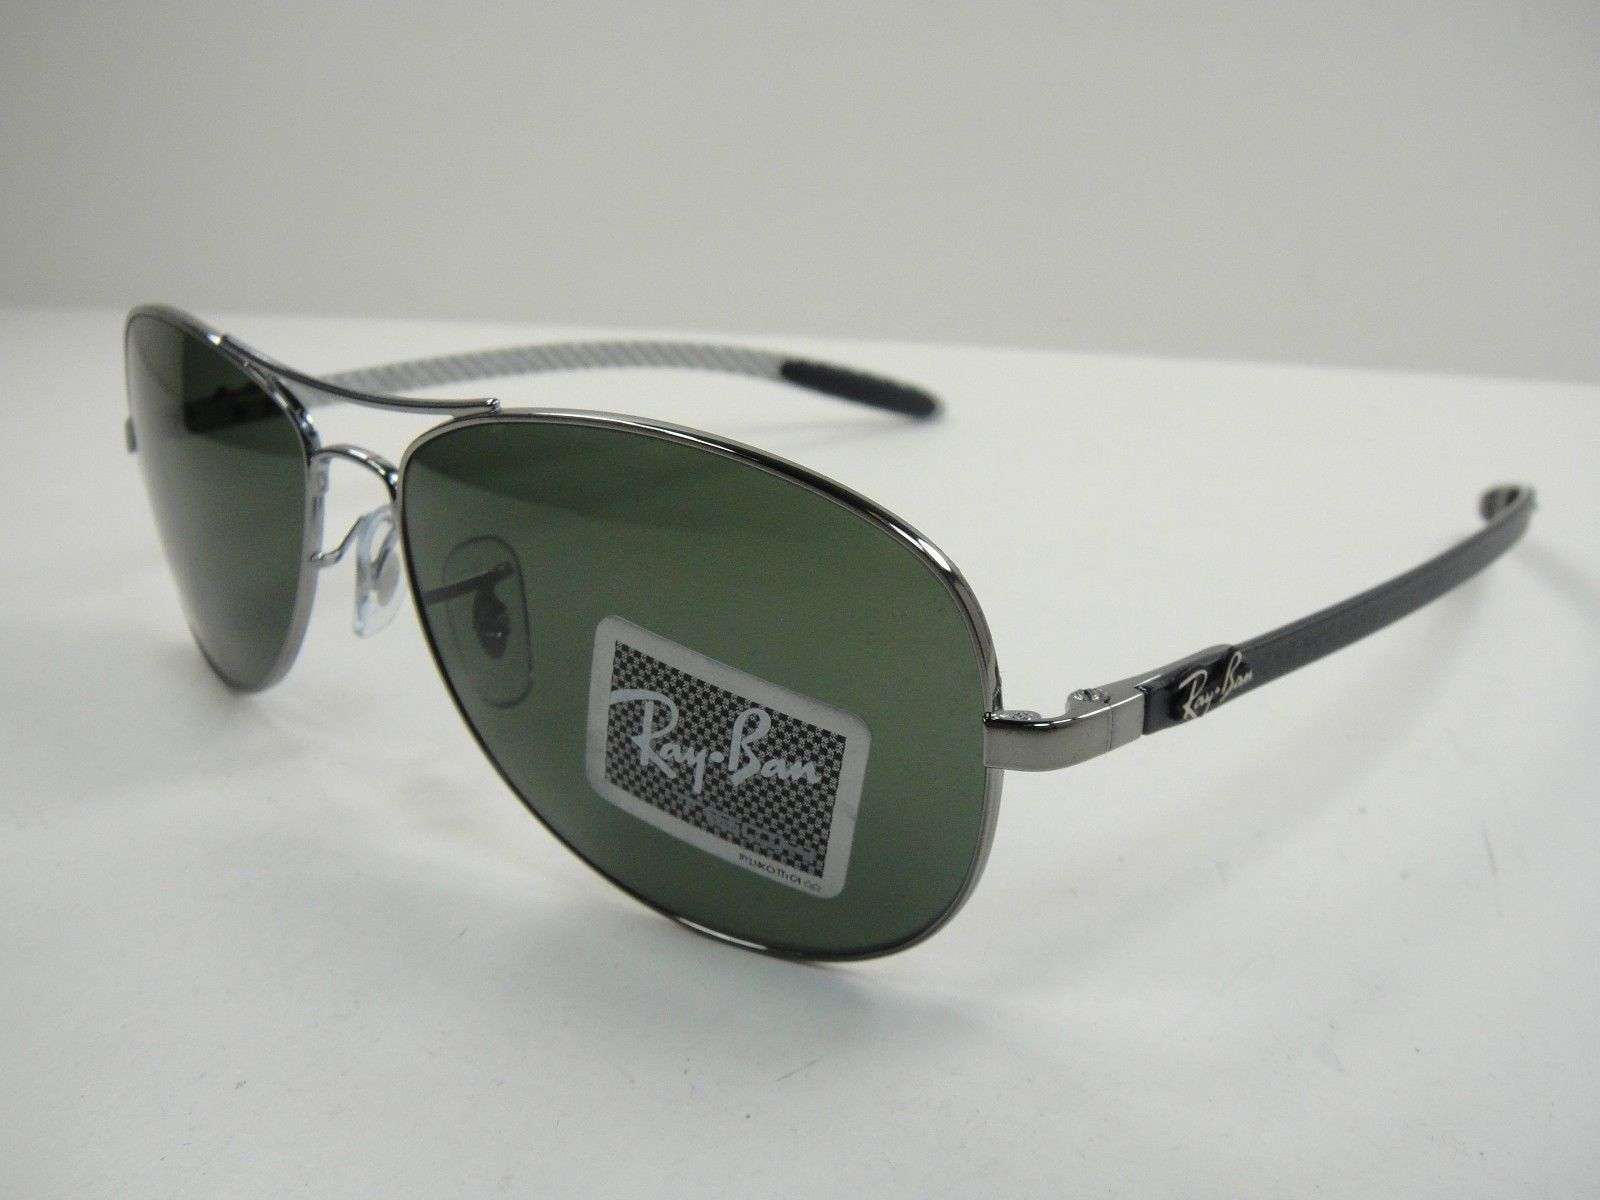 RAY BAN RB8301 131 TECH G-15 Green 59mm